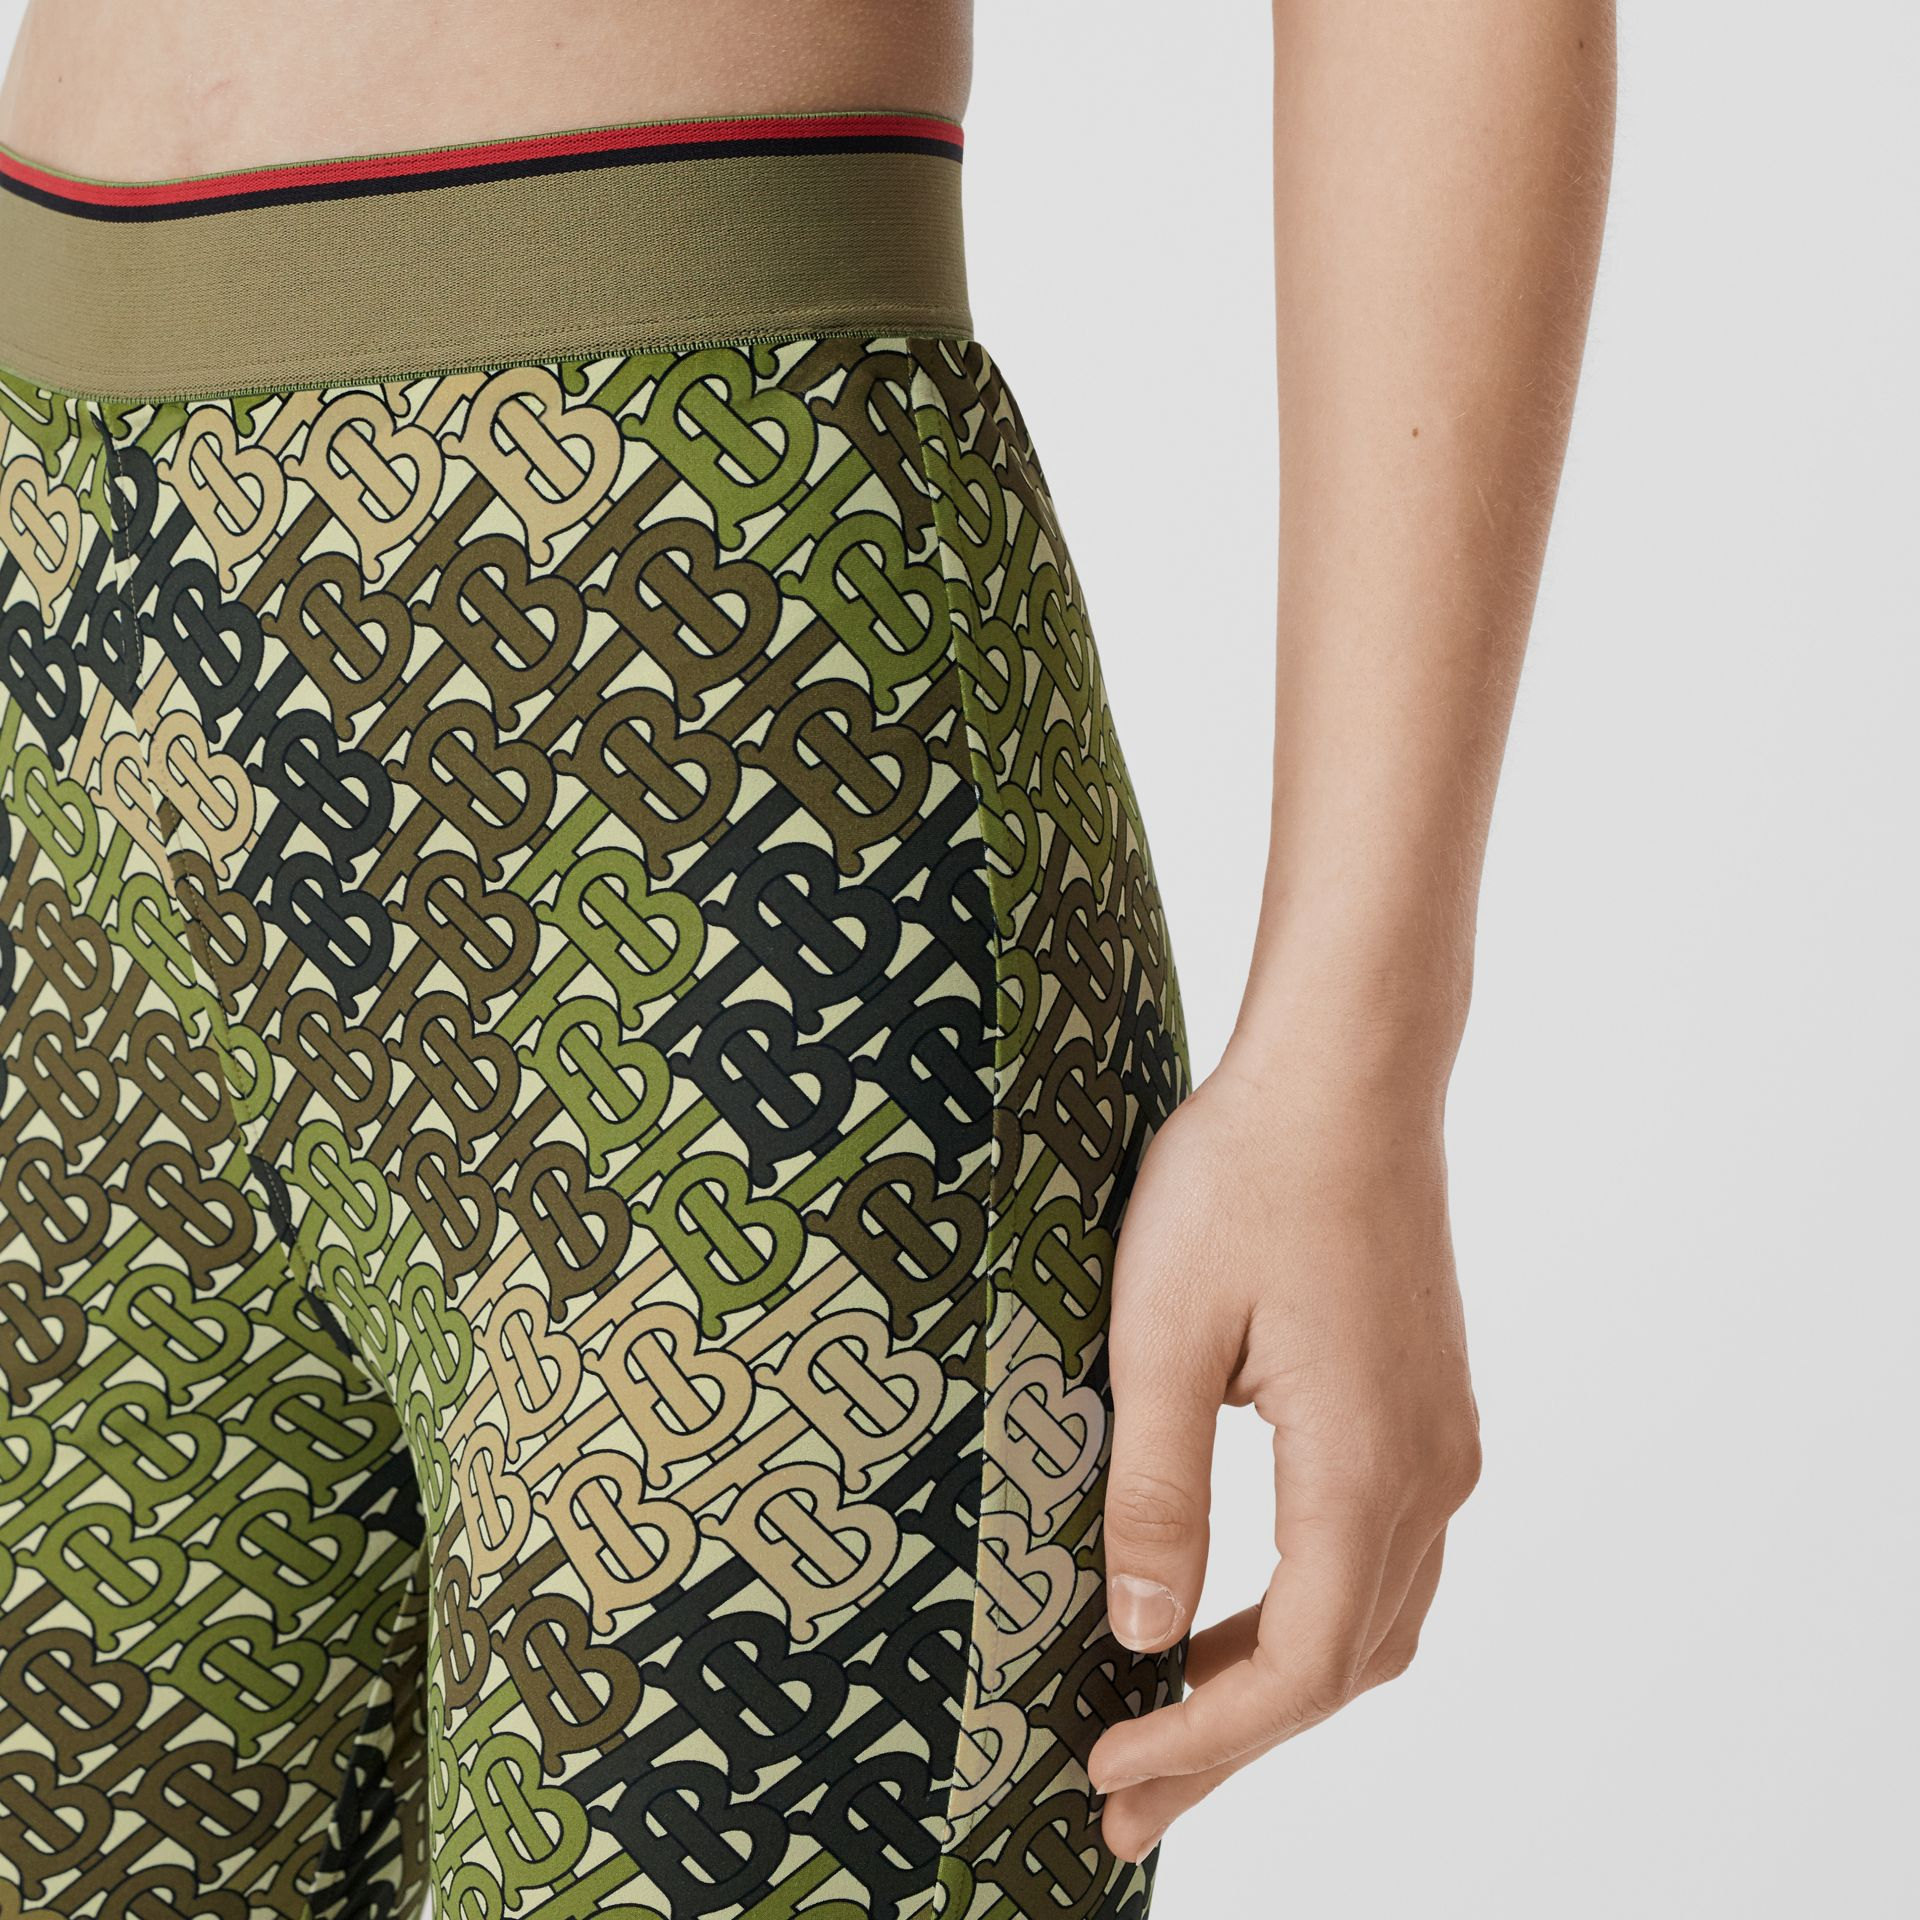 Monogram Print Stretch Jersey Leggings in Khaki Green - Women | Burberry - gallery image 1